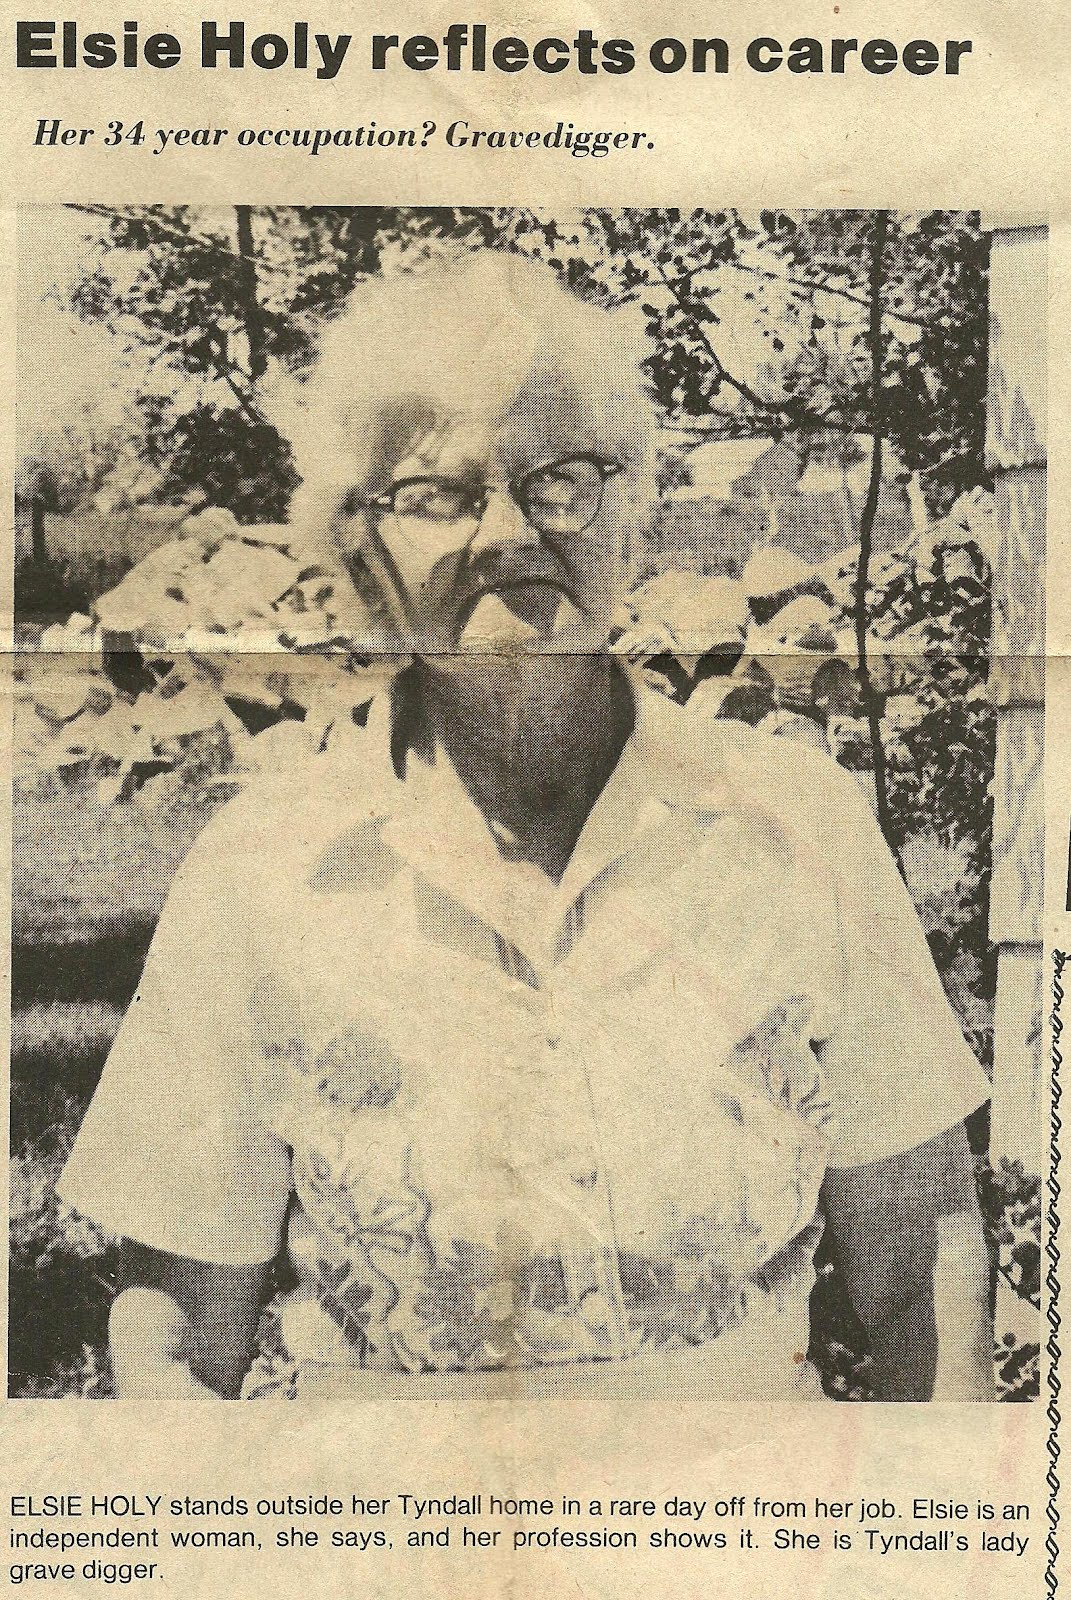 South dakota meade county howes - Her 34 Year Occupation Gravedigger